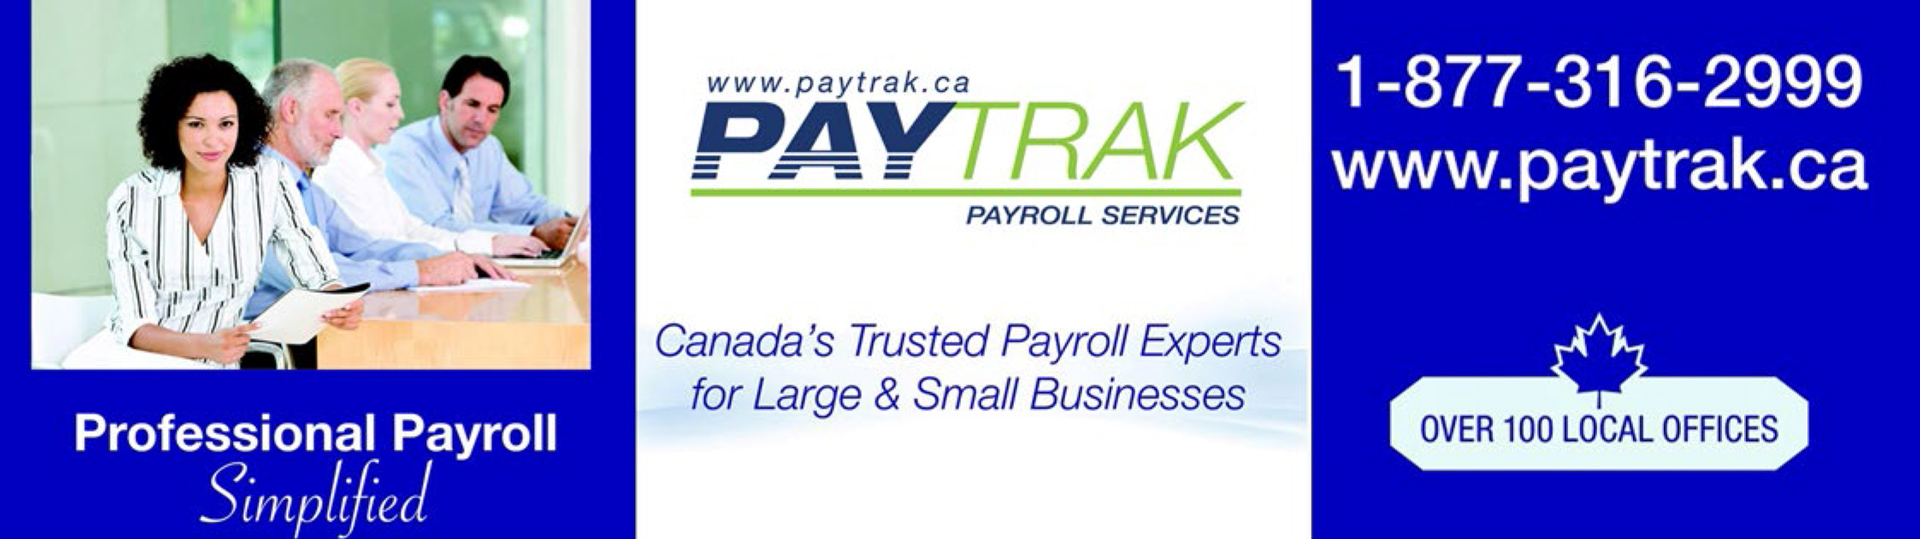 This image is of a banner advertising PayTrak software.